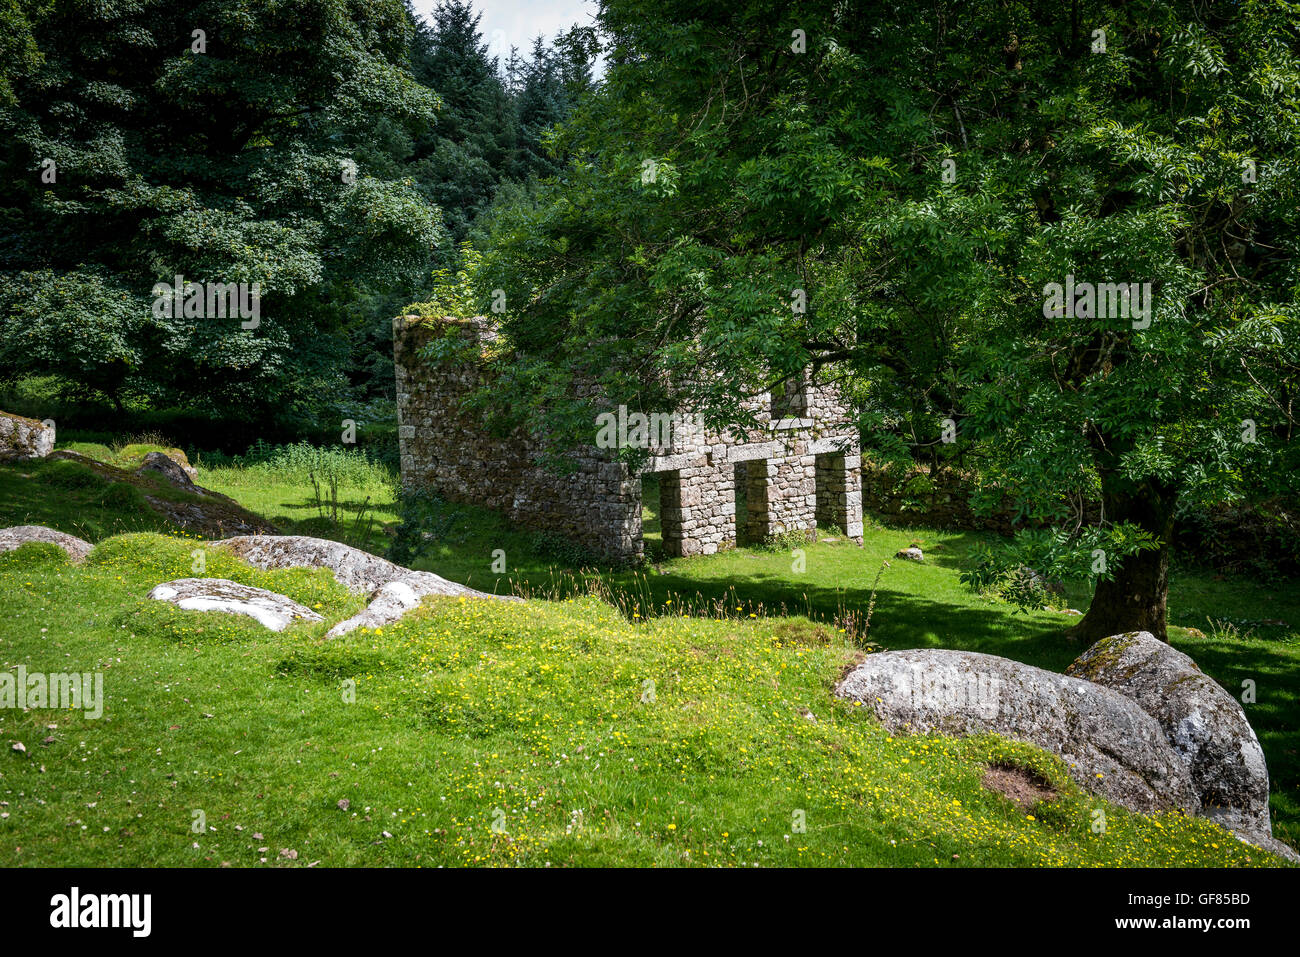 Deserted Medieval farm house near Burrator Reservoir on Dartmoor, Devon, UK - Stock Image